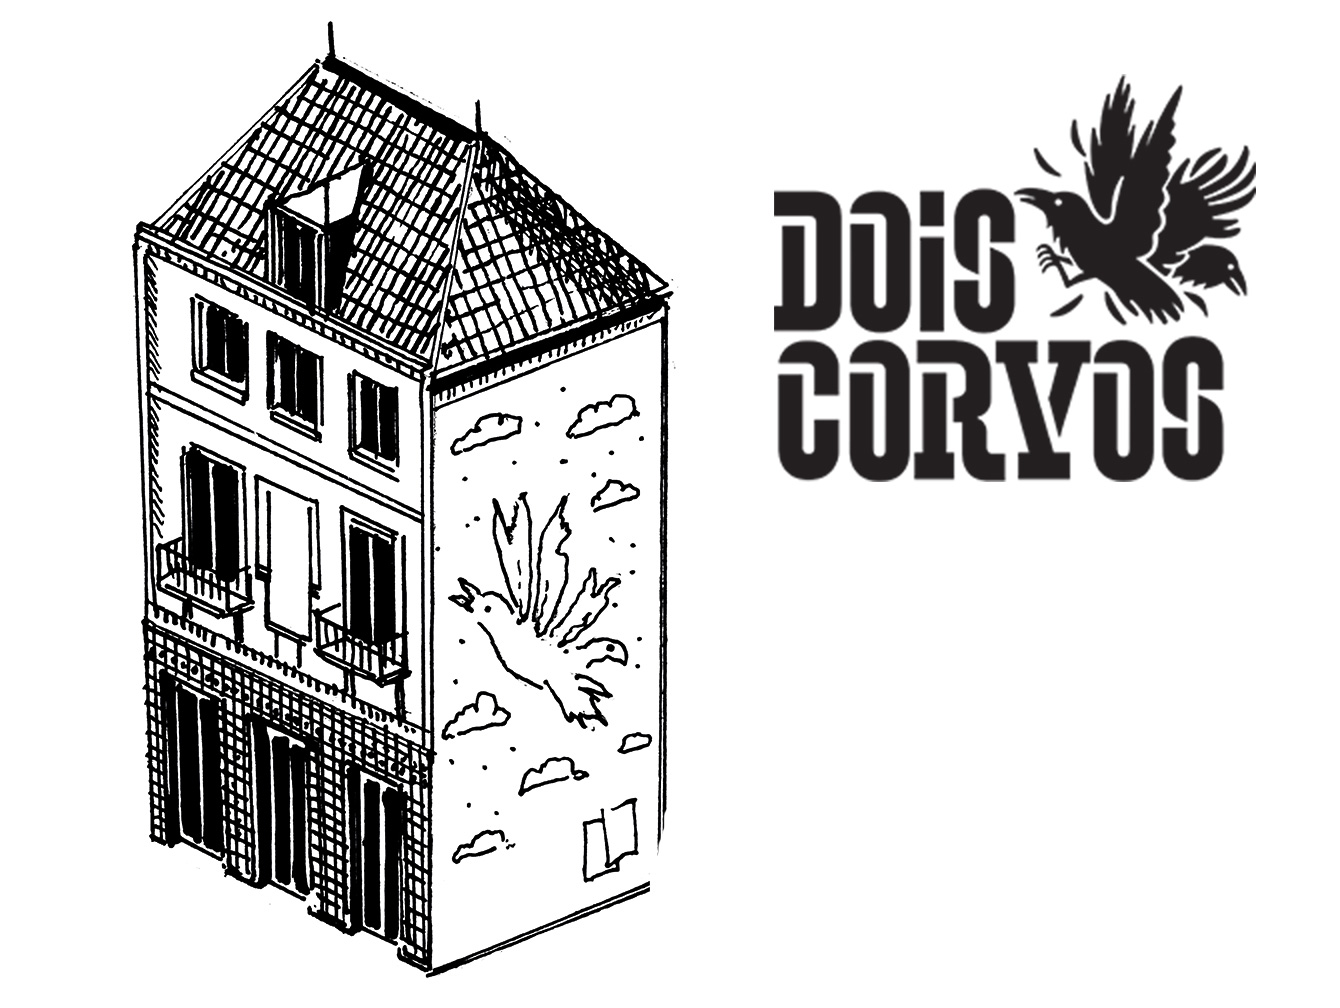 The Brewery Dois Corvos